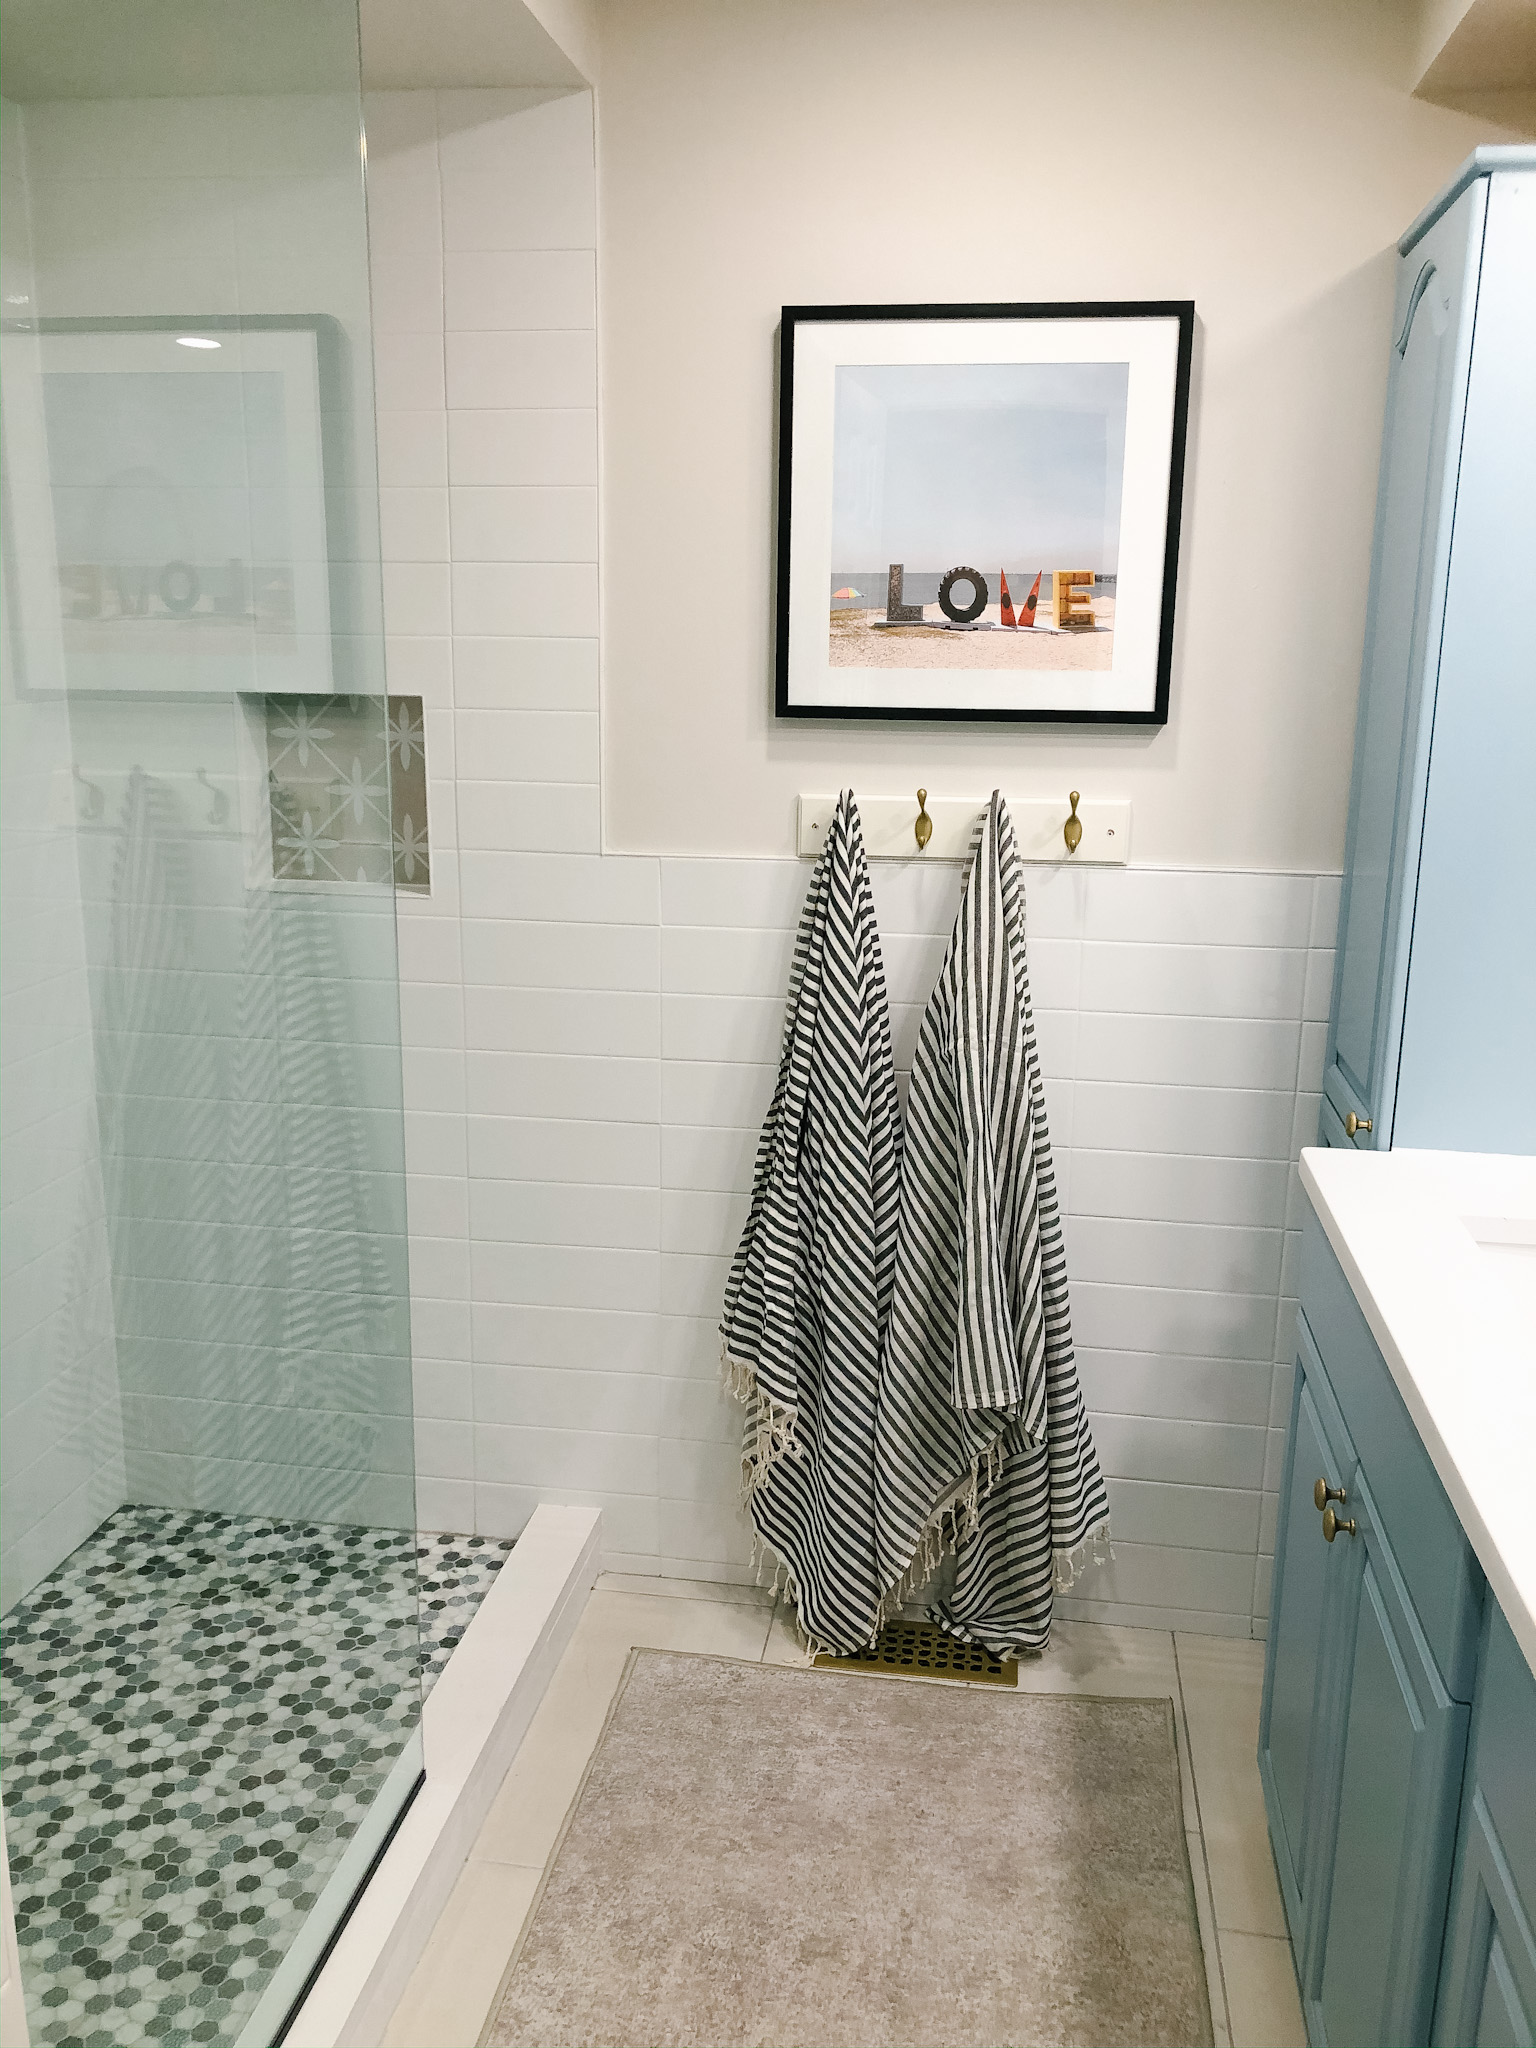 This new shower is a dream compared to the old one. It drains to start.